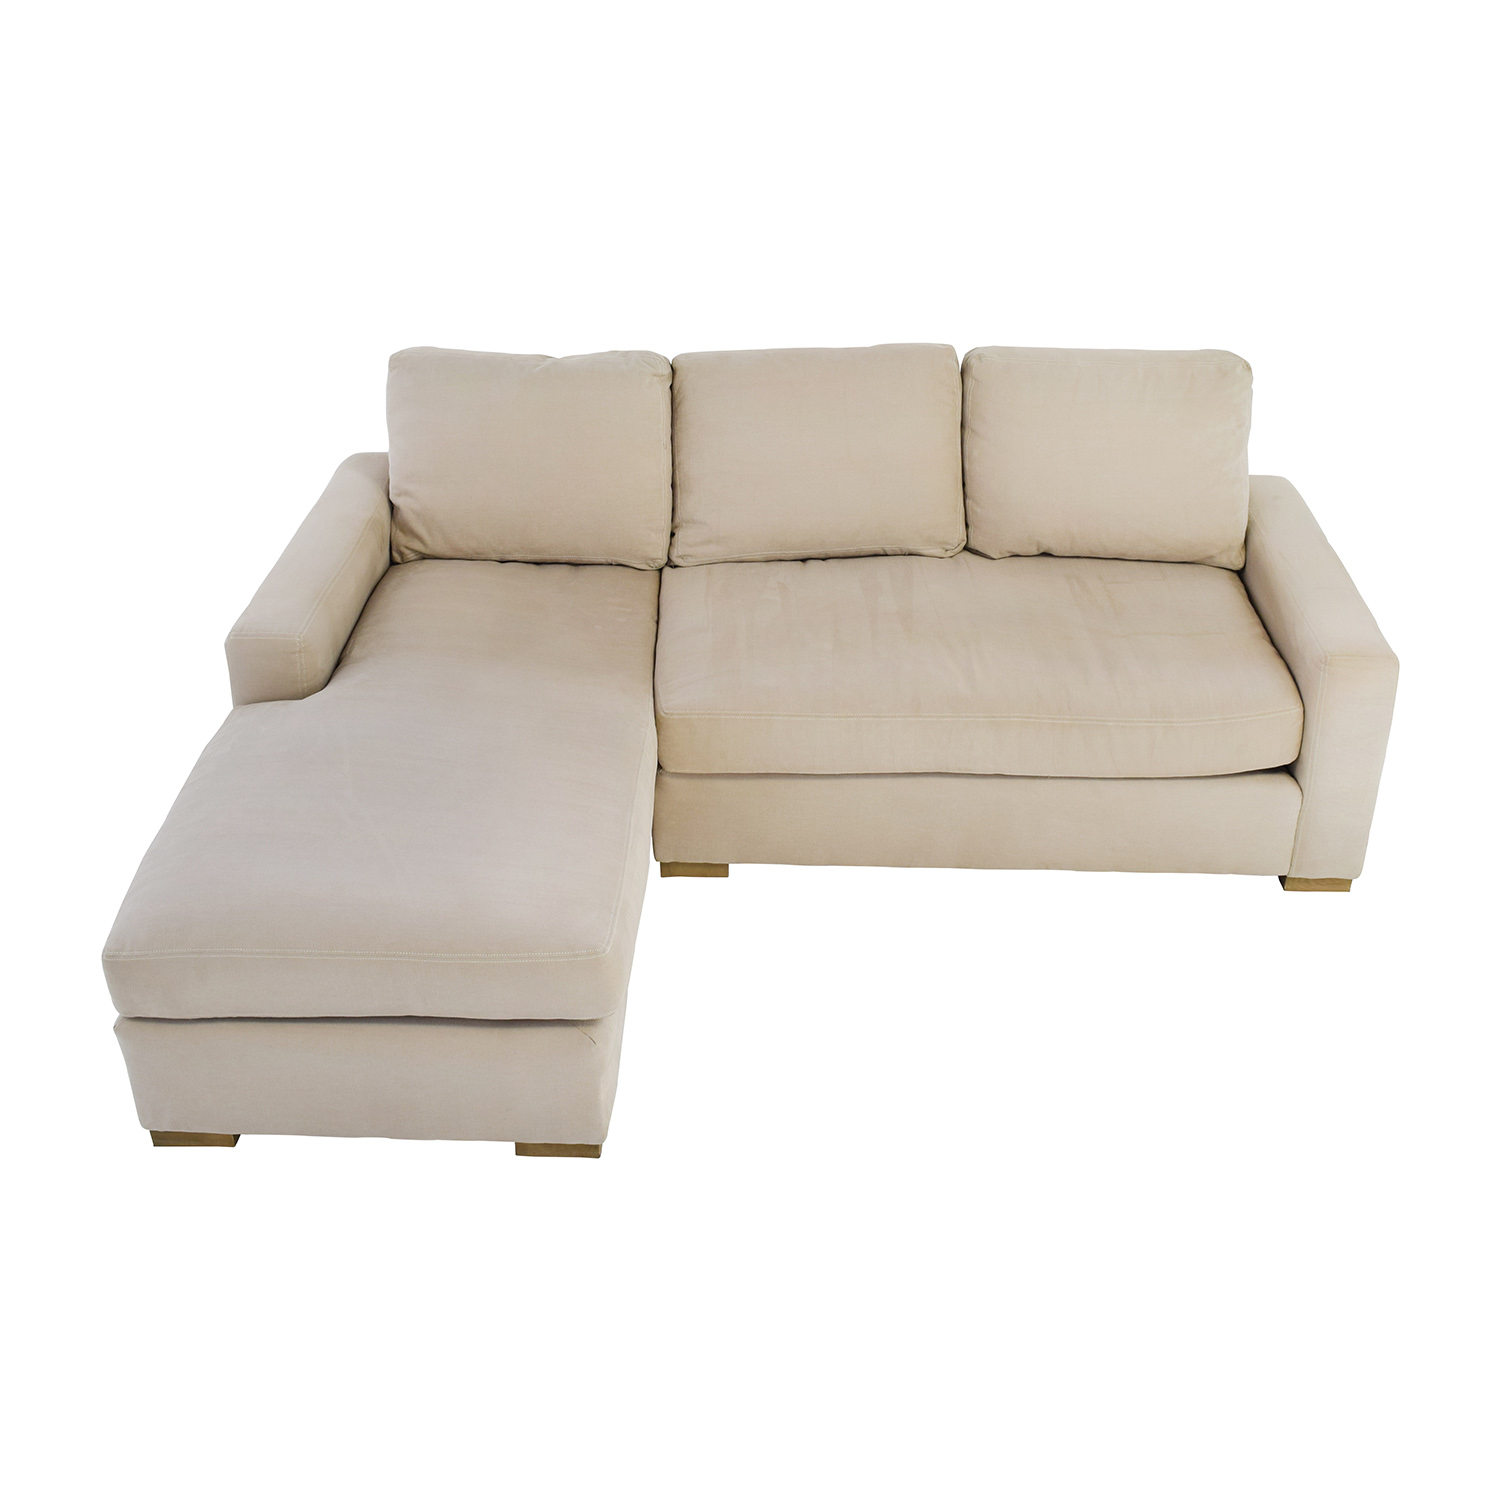 who makes the maxwell sofa for restoration hardware living rooms with cream leather sofas shop beige